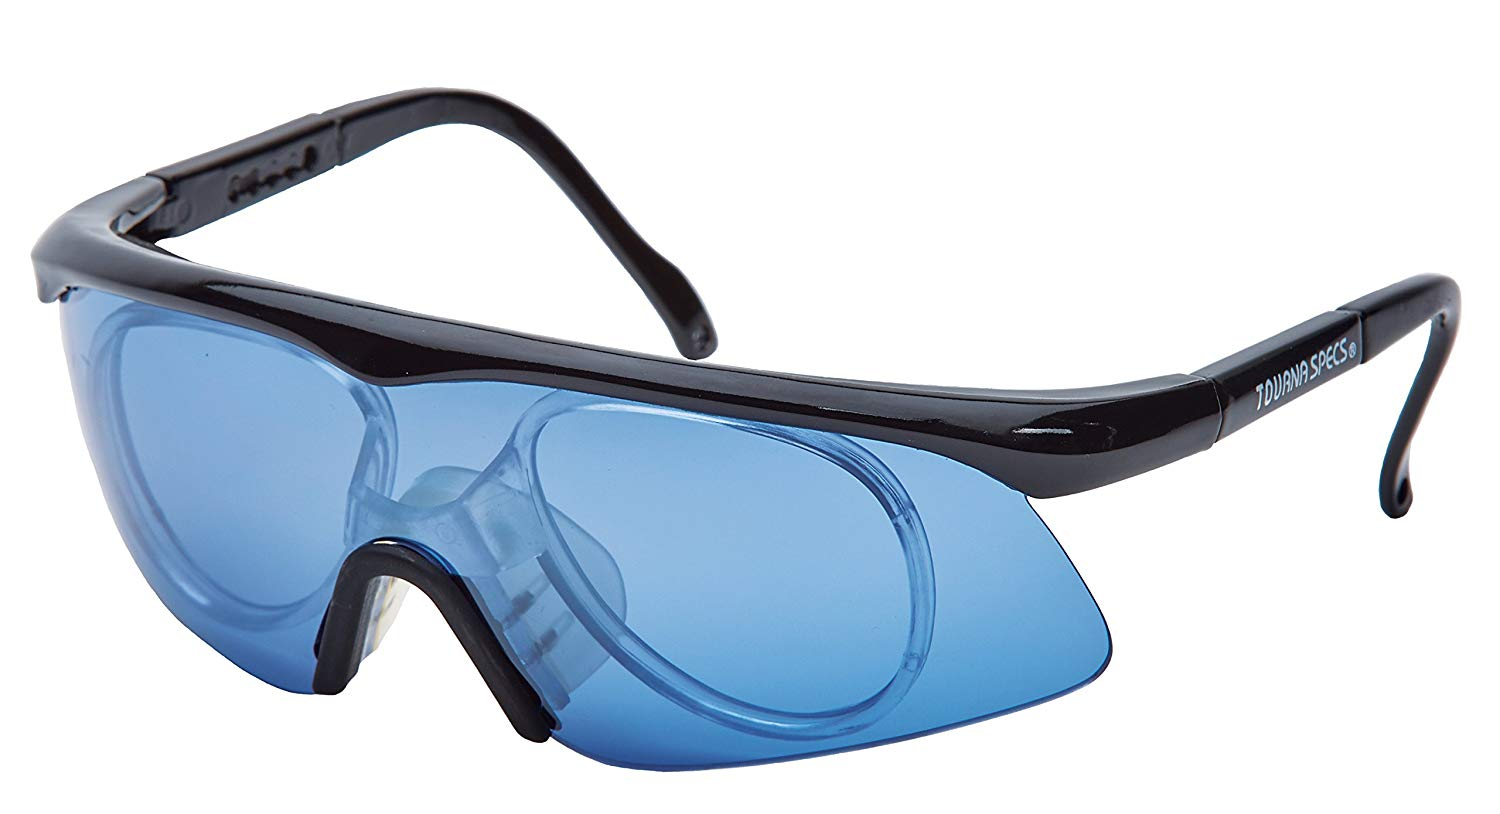 e0f67d63025 Get Quotations · Unique Sports Blue Tourna Specs Blue Protective Eyewear  with Prescription Adapter